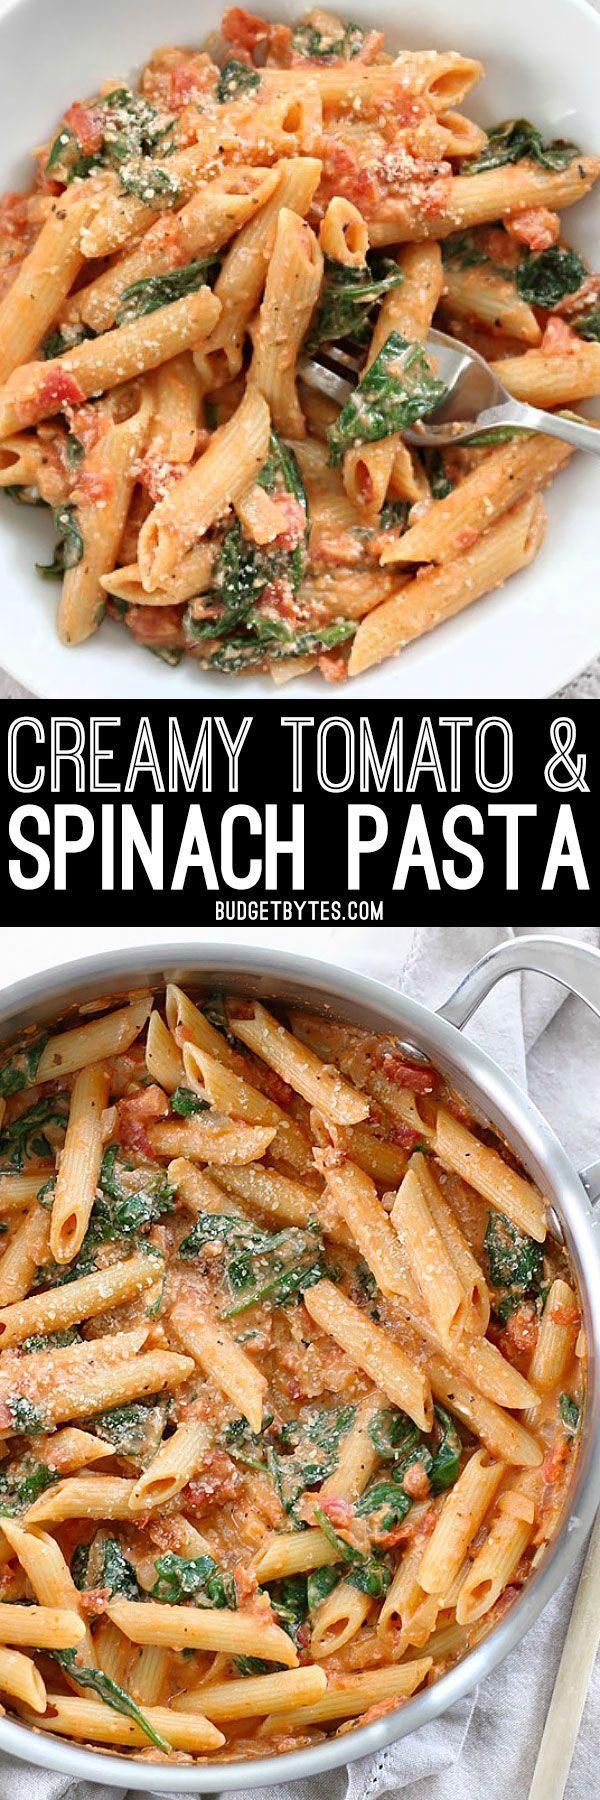 Creamy Tomato and Spinach Pasta - with VIDEO - Budget Bytes